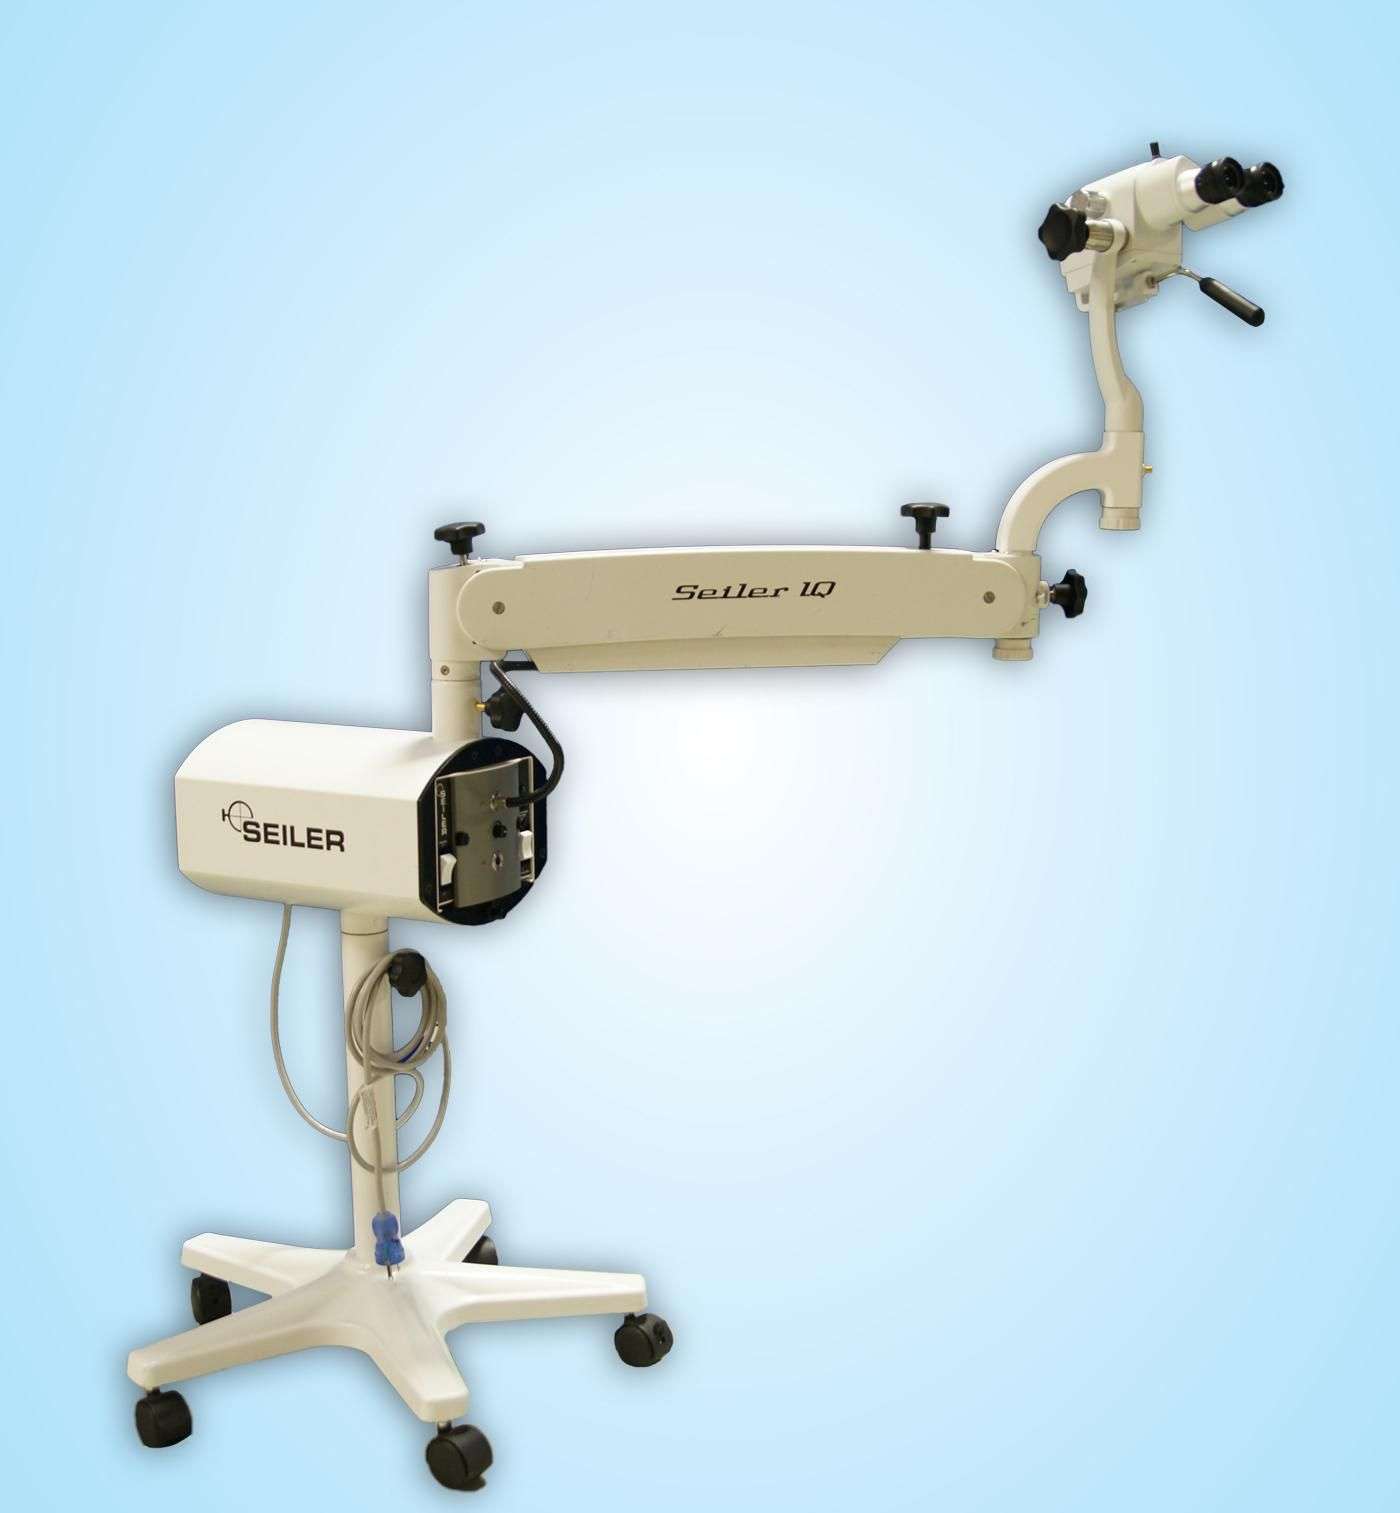 SEILER 955 Colposcope Demo Colposcope with Warranty